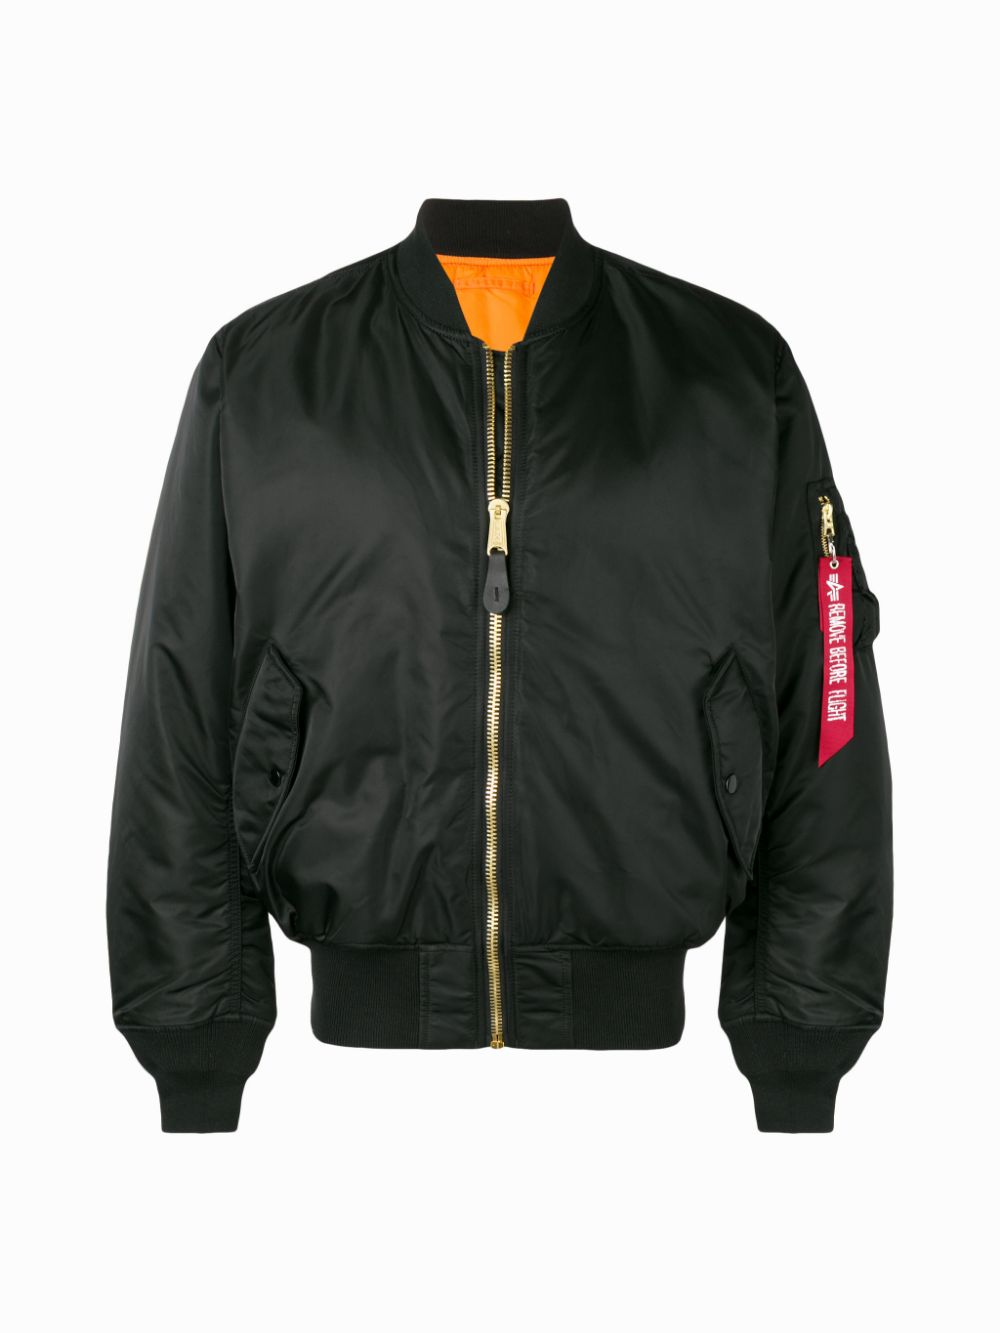 giacca ma1 unisex nera in nylon ALPHA INDUSTRIES   Giacche   10010103